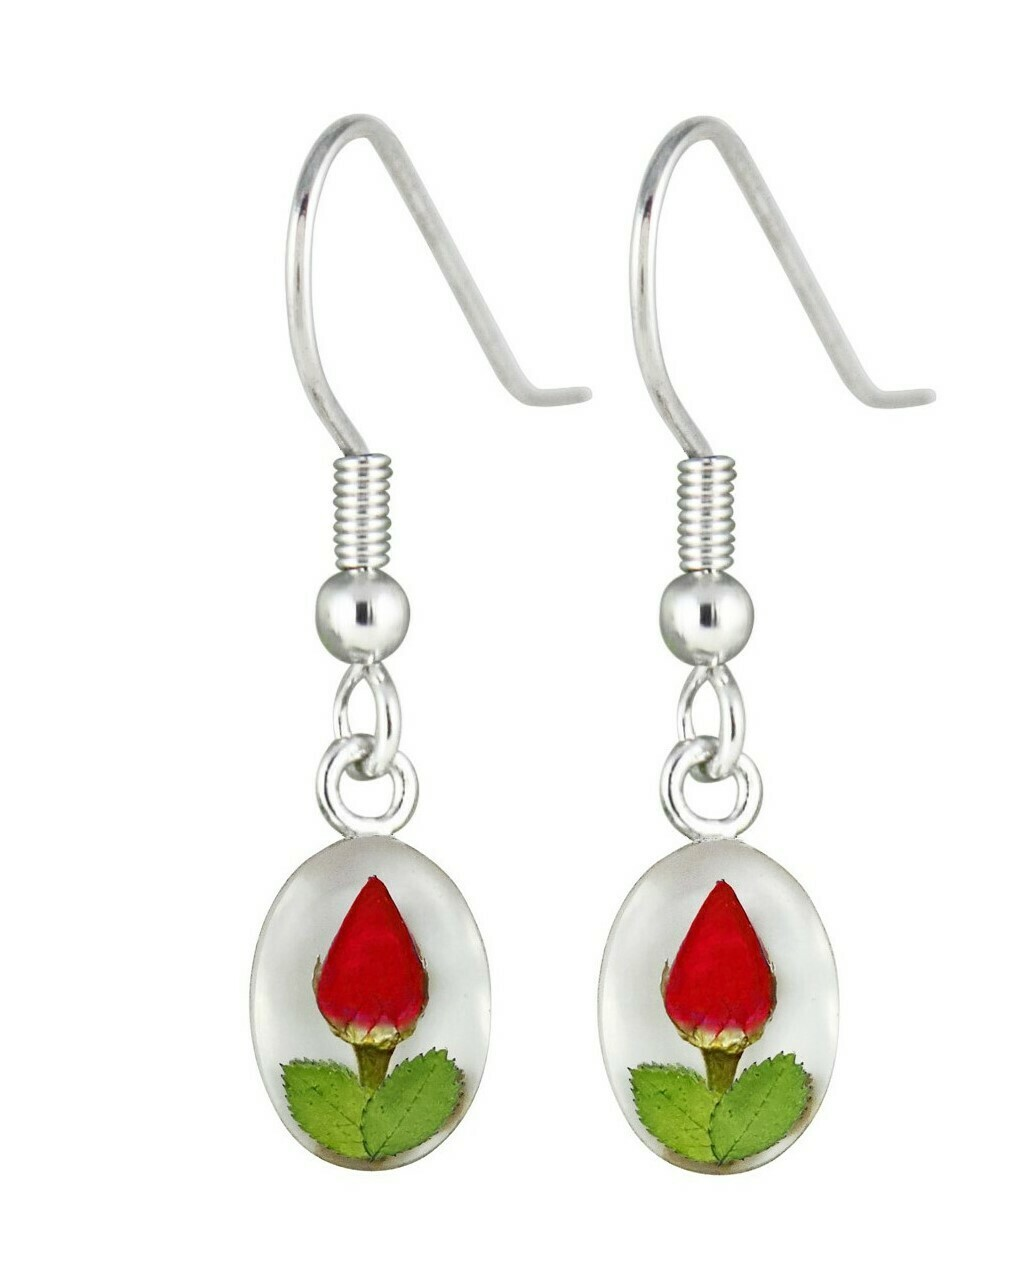 Rose, Small Oval Hanging Earrings, White Background.